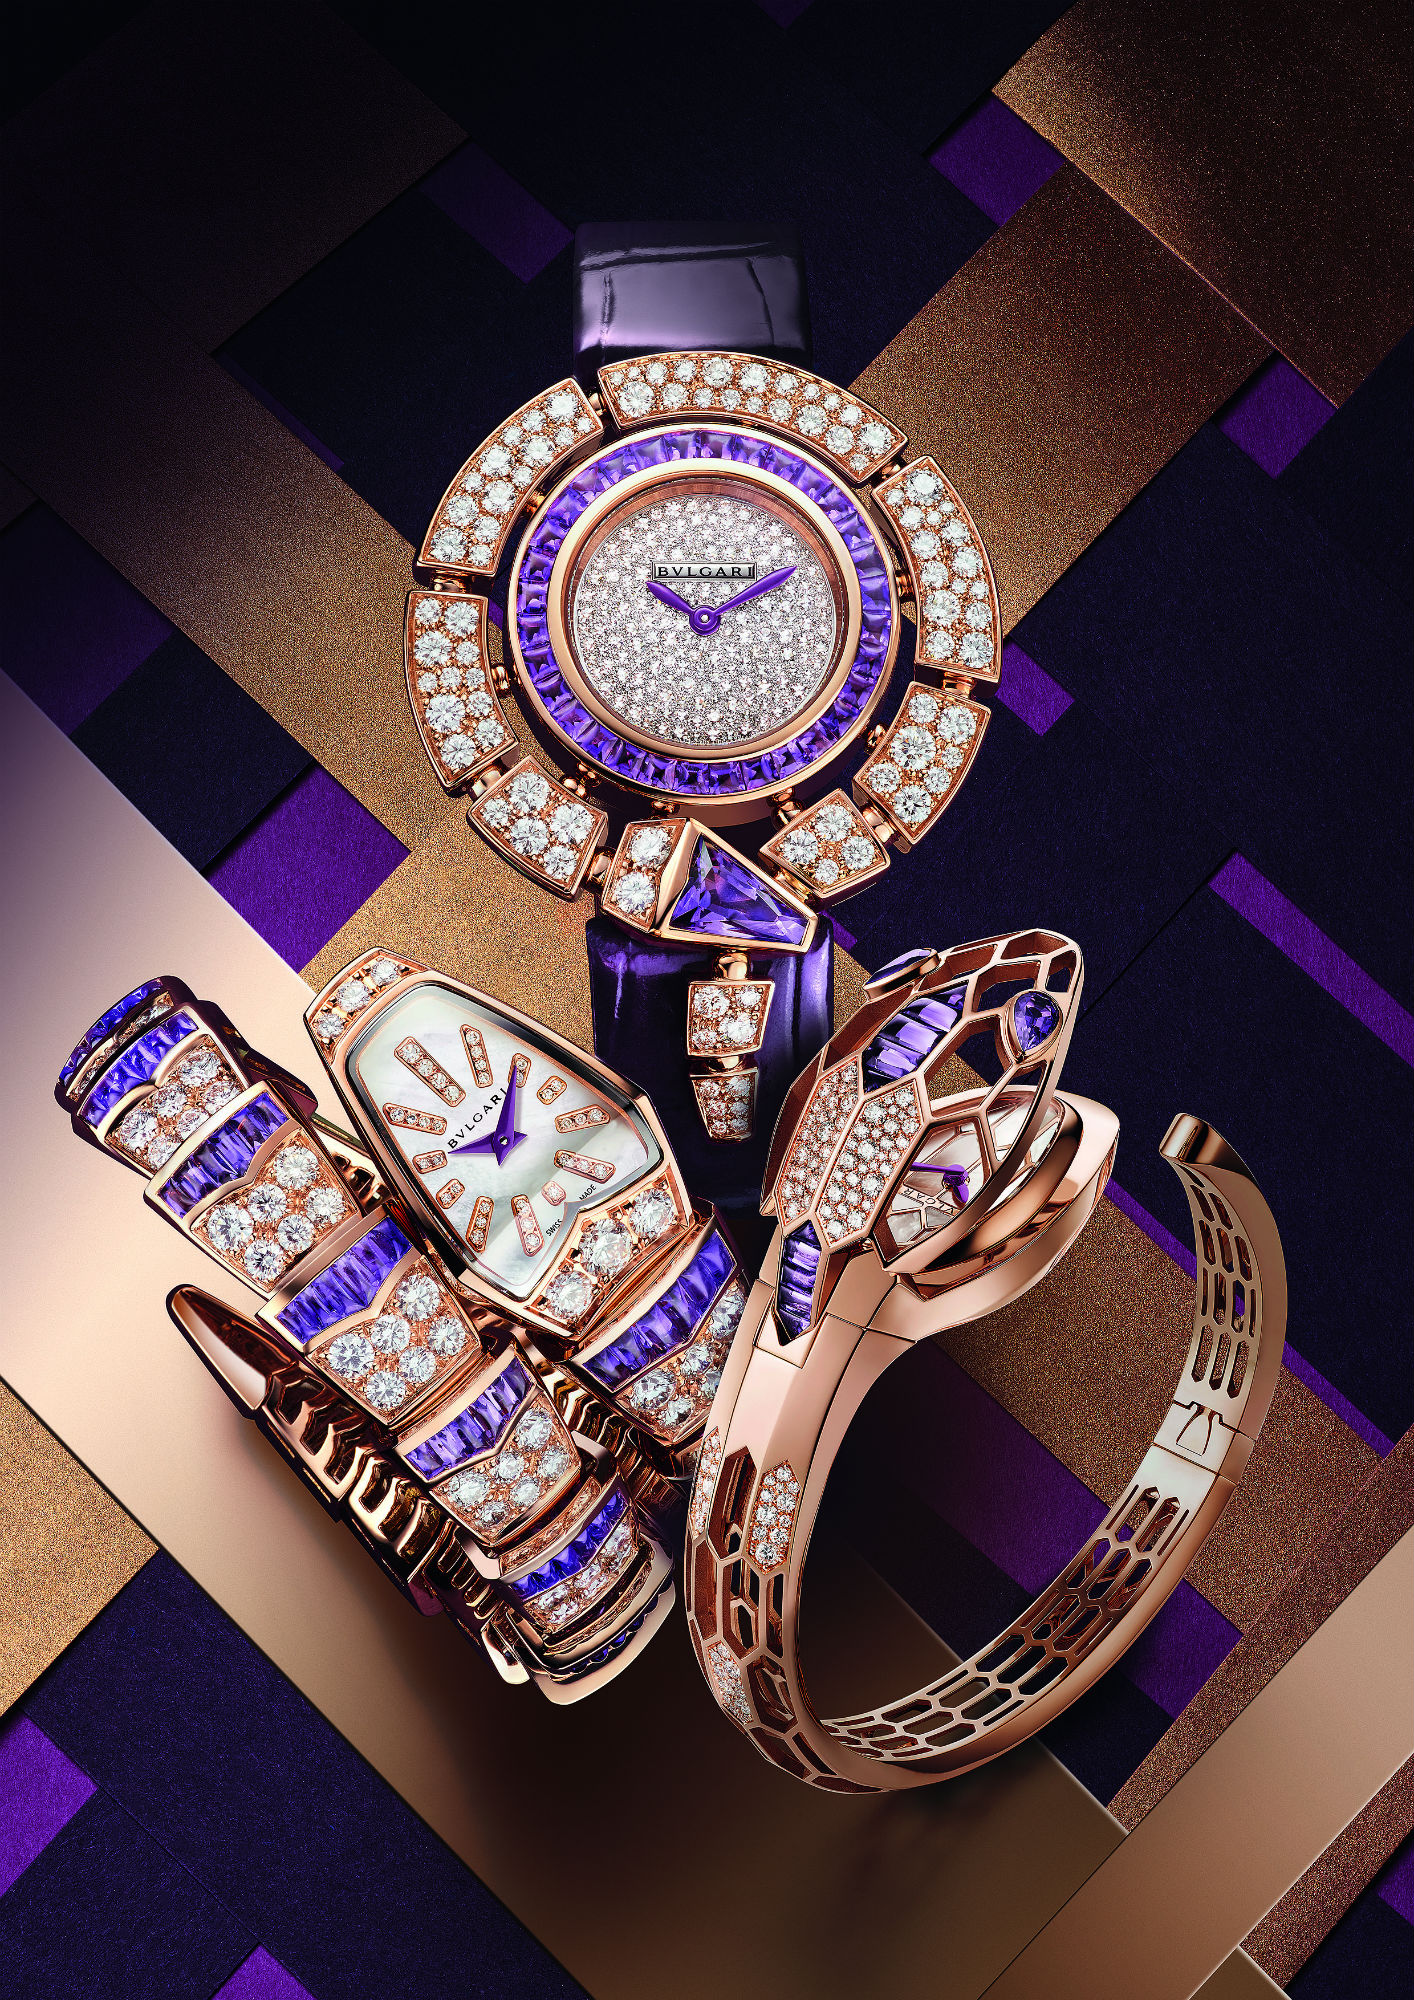 See the latest update on the iconic Bvlgari Serpenti watches